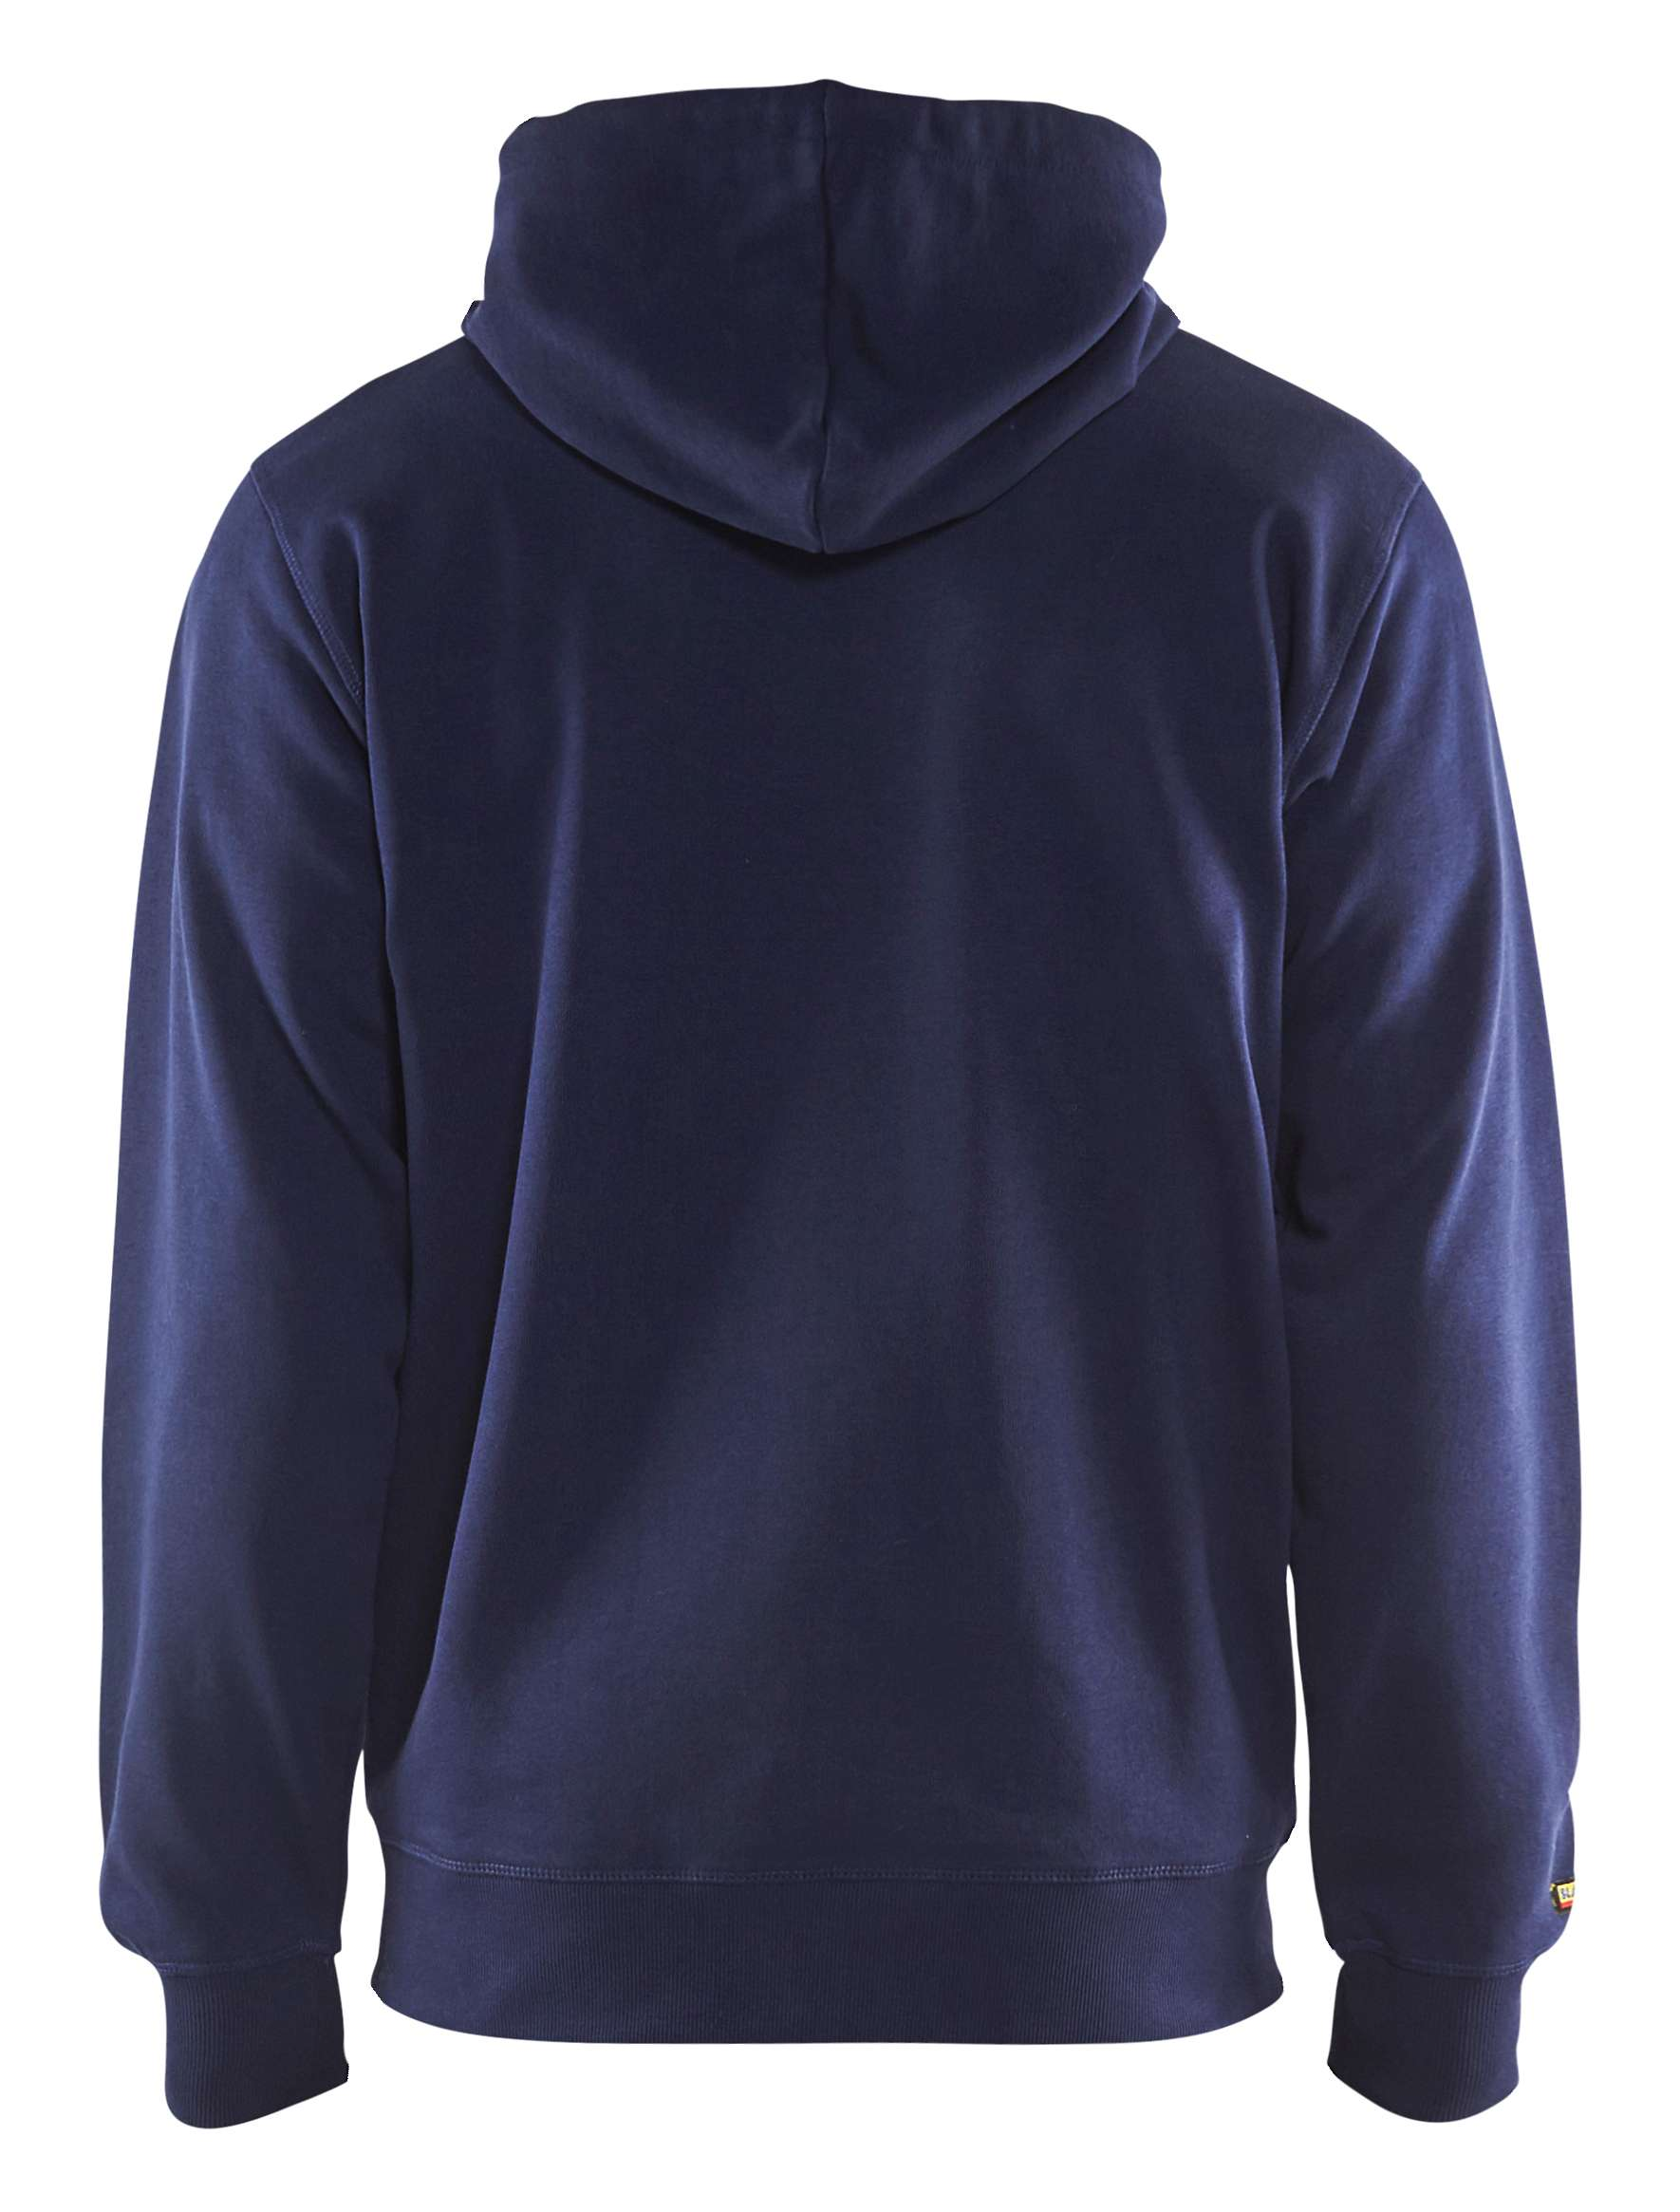 Blaklader Hooded sweatvesten 33661048 marineblauw(8800)